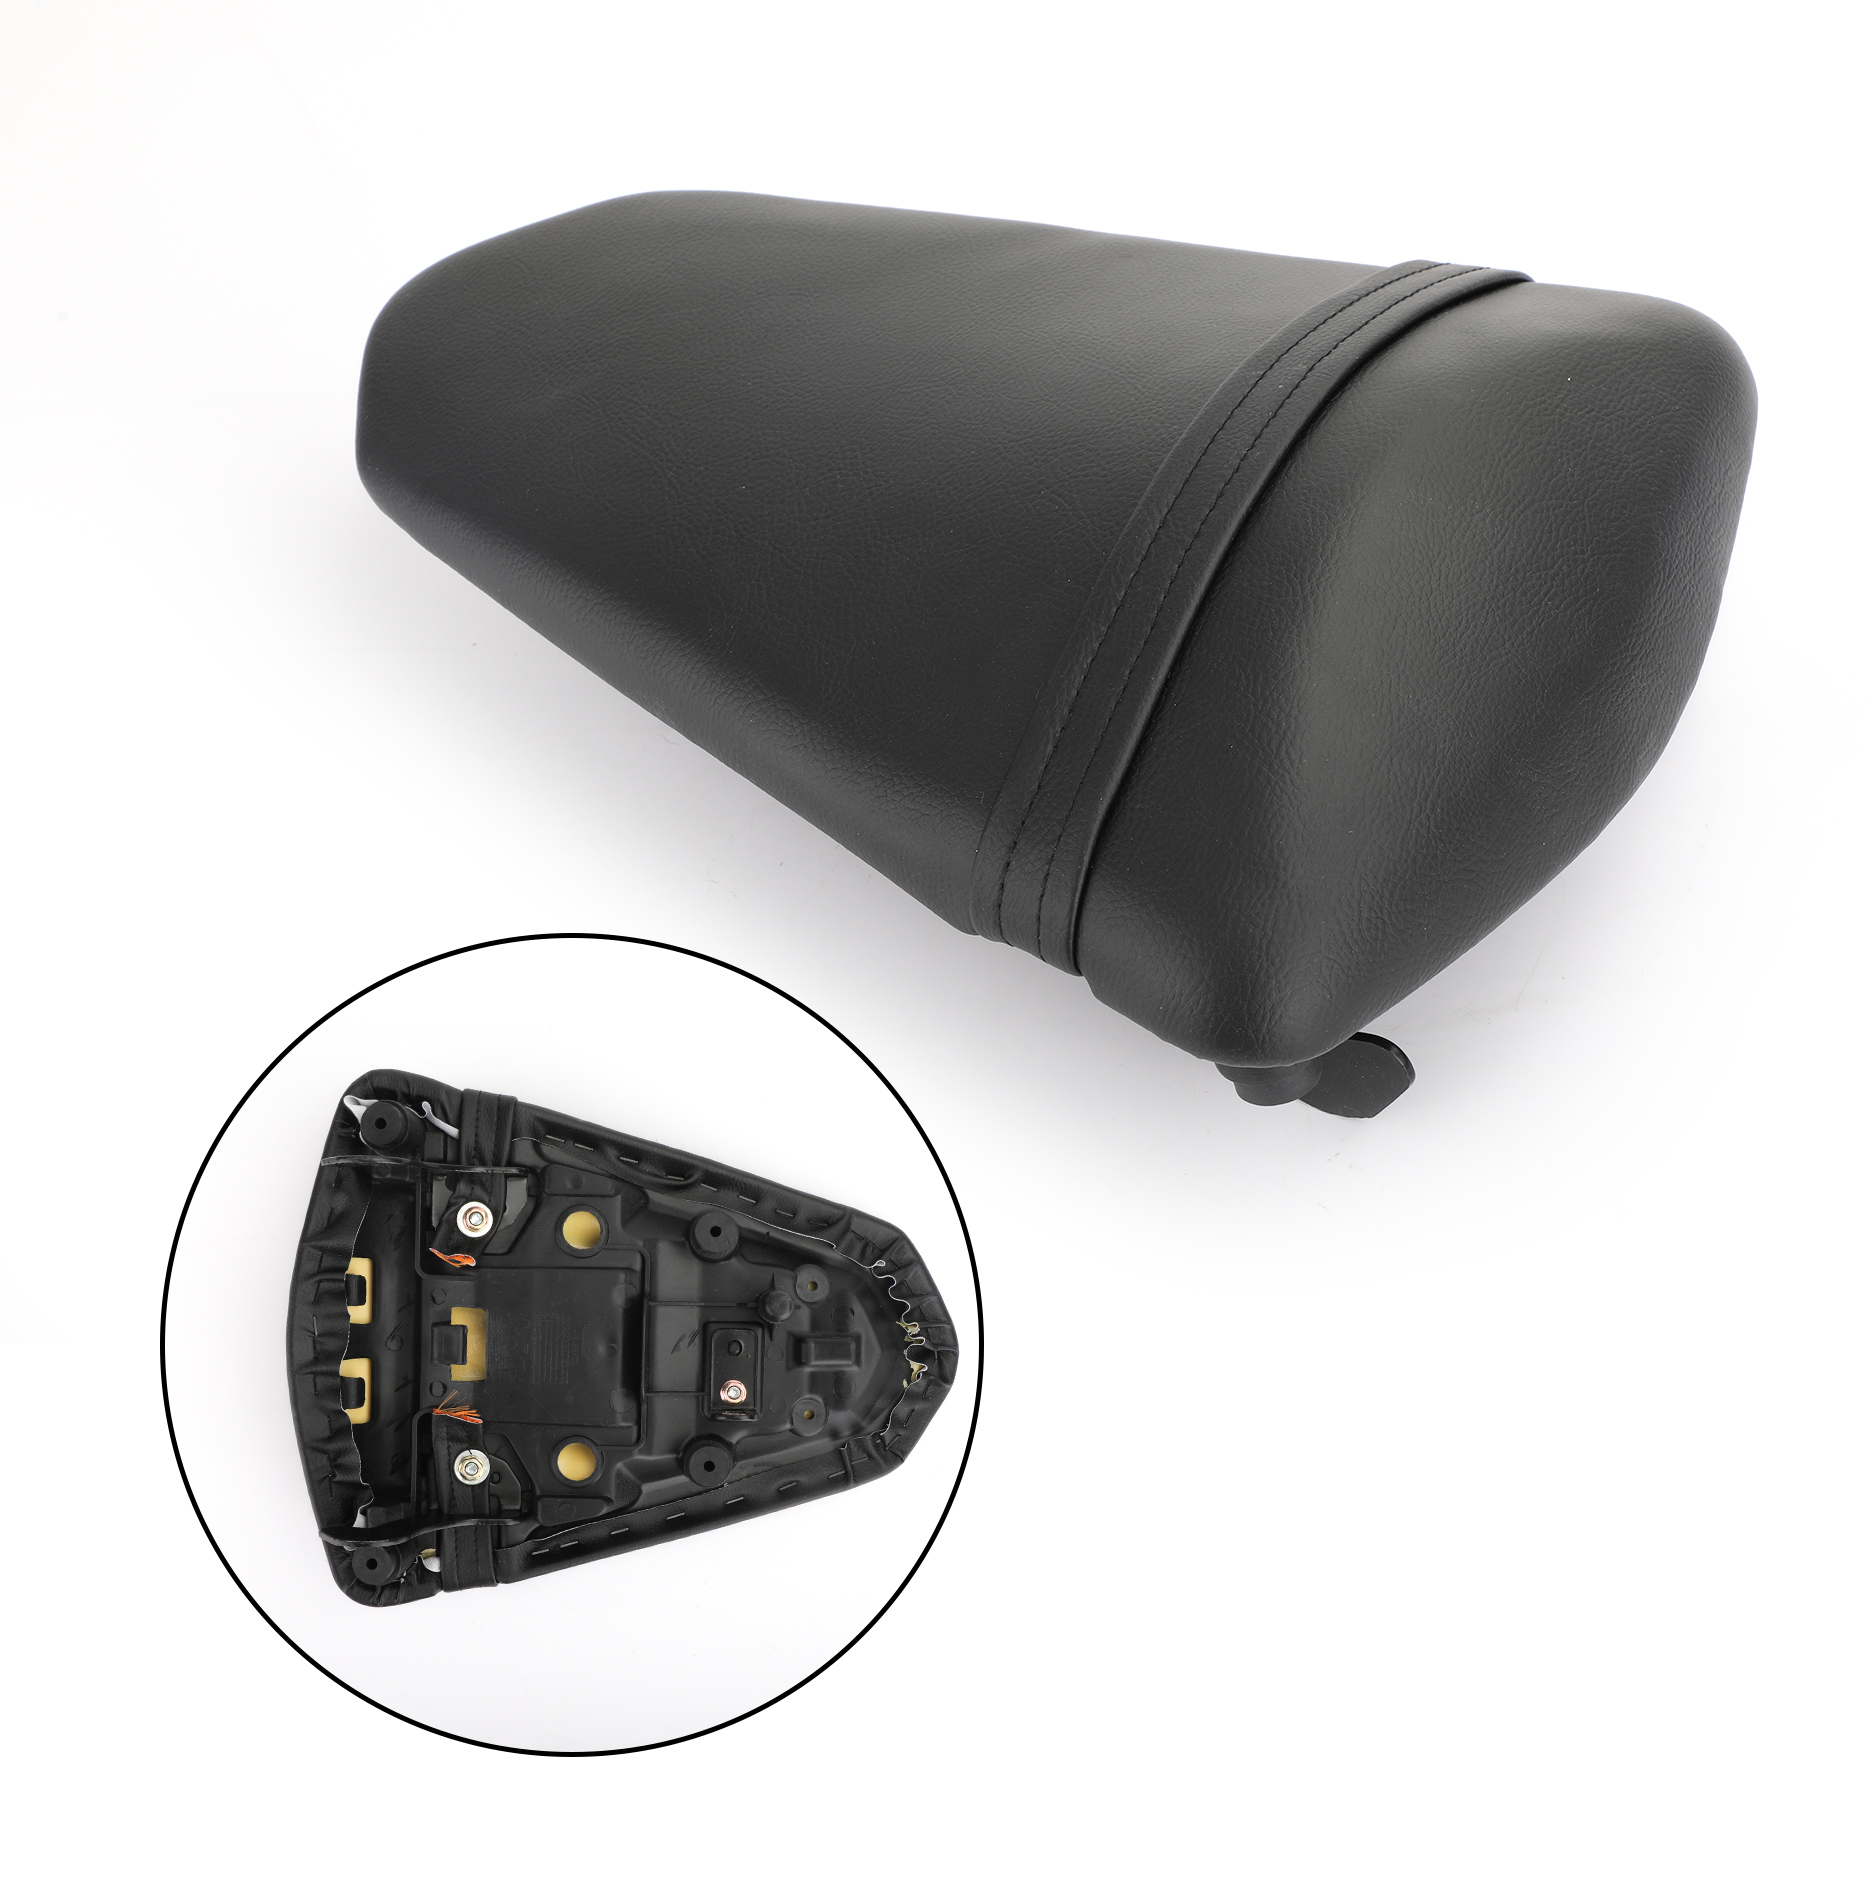 Areyourshop Motorcycle Rear Passenger Seat Black Cushion Pad For Yamaha YZF R3 15-18 YZF R25 2013-2018 Motorcycle Accessories